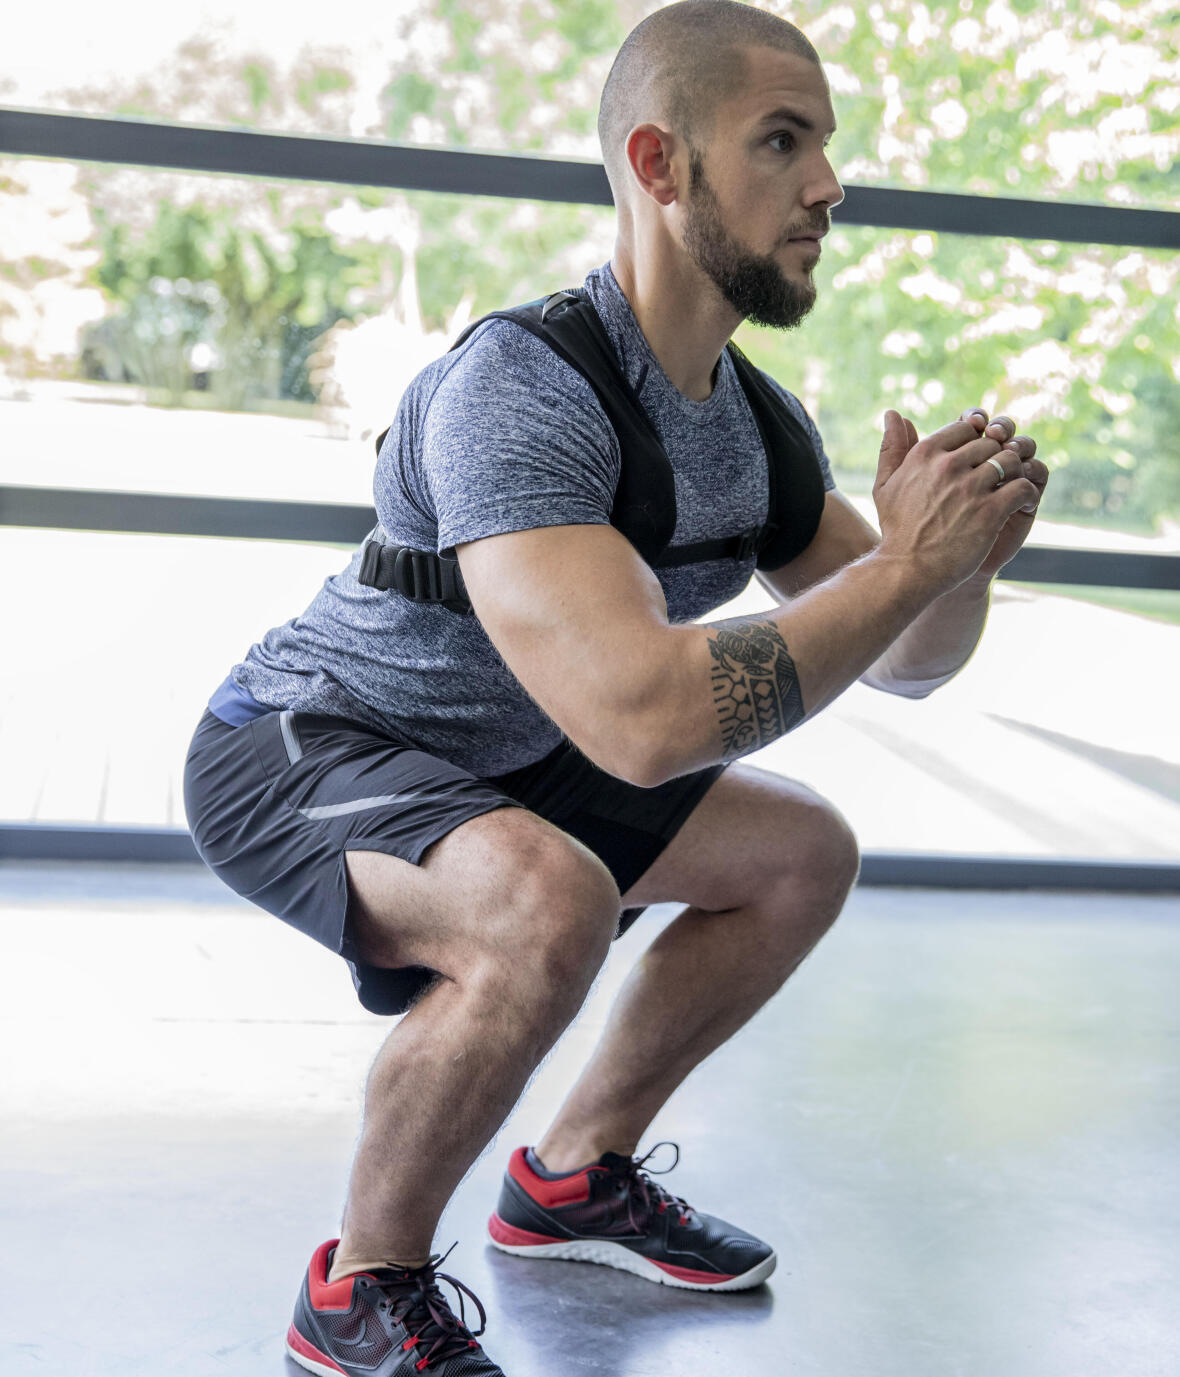 Squats to build strengthen your legs